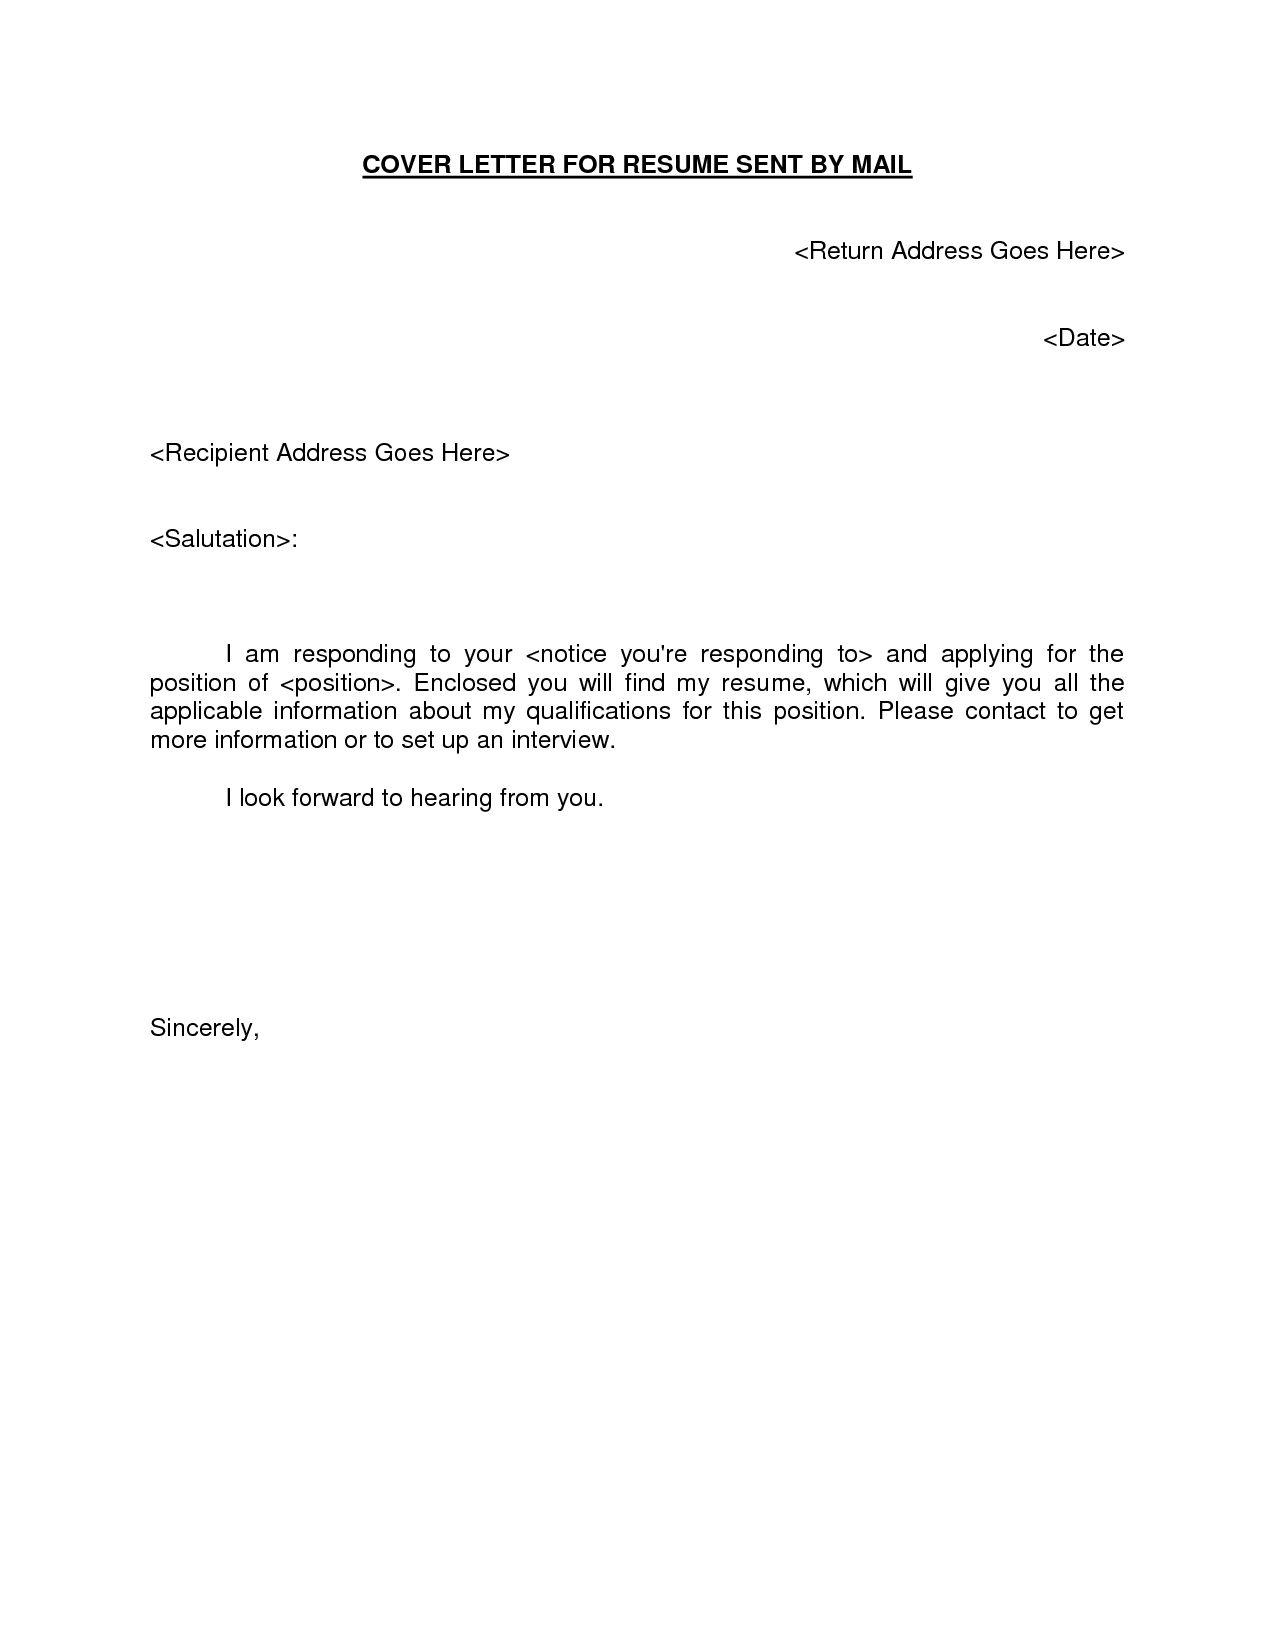 25 Email Cover Letter Cover Letter For Resume Email Cover Letter Resume Cover Letter Template